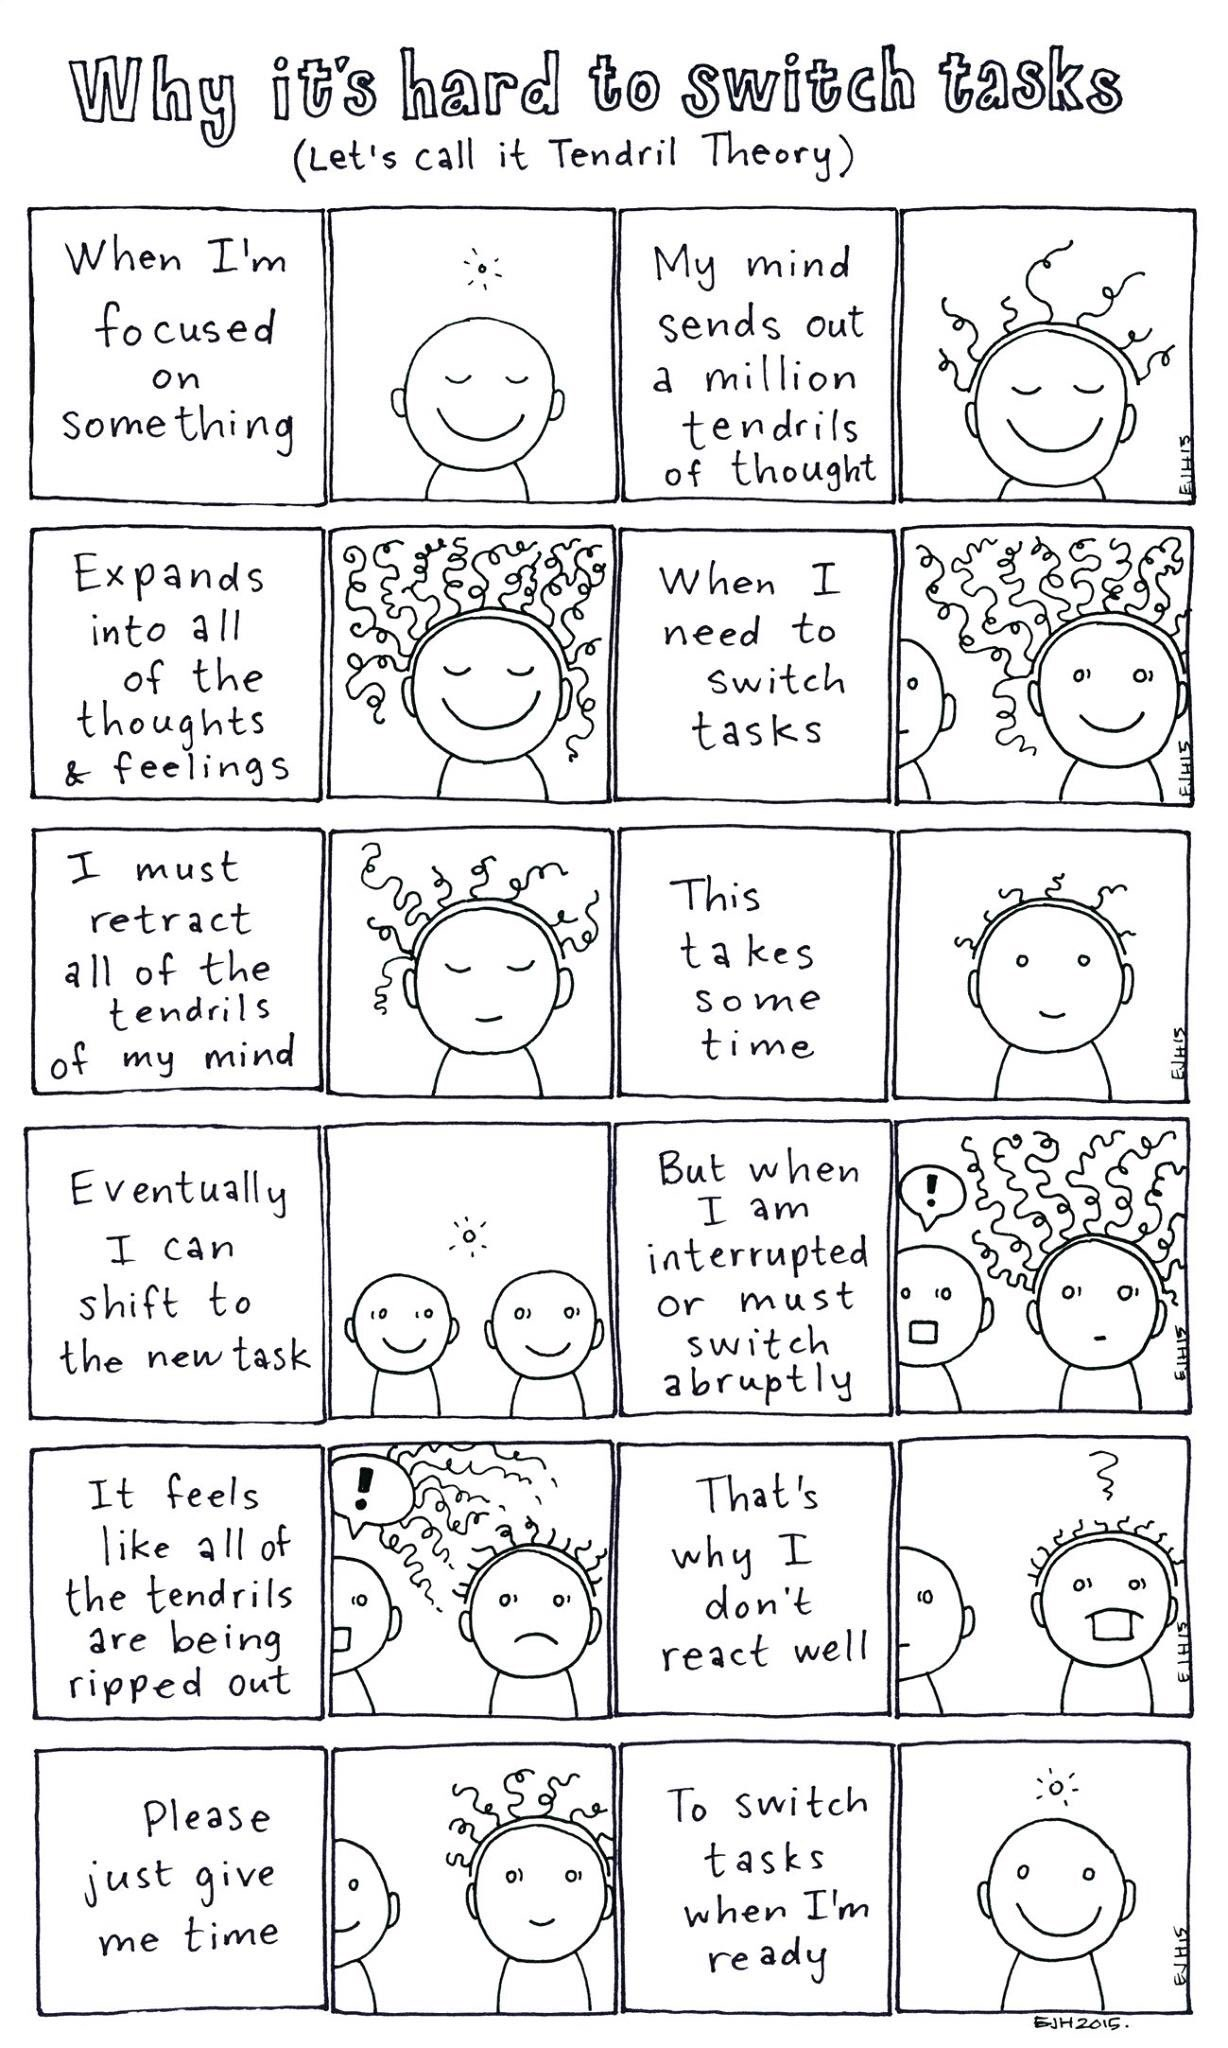 Why is it hard to switch tasks - a comic explanation   The Art of Autism